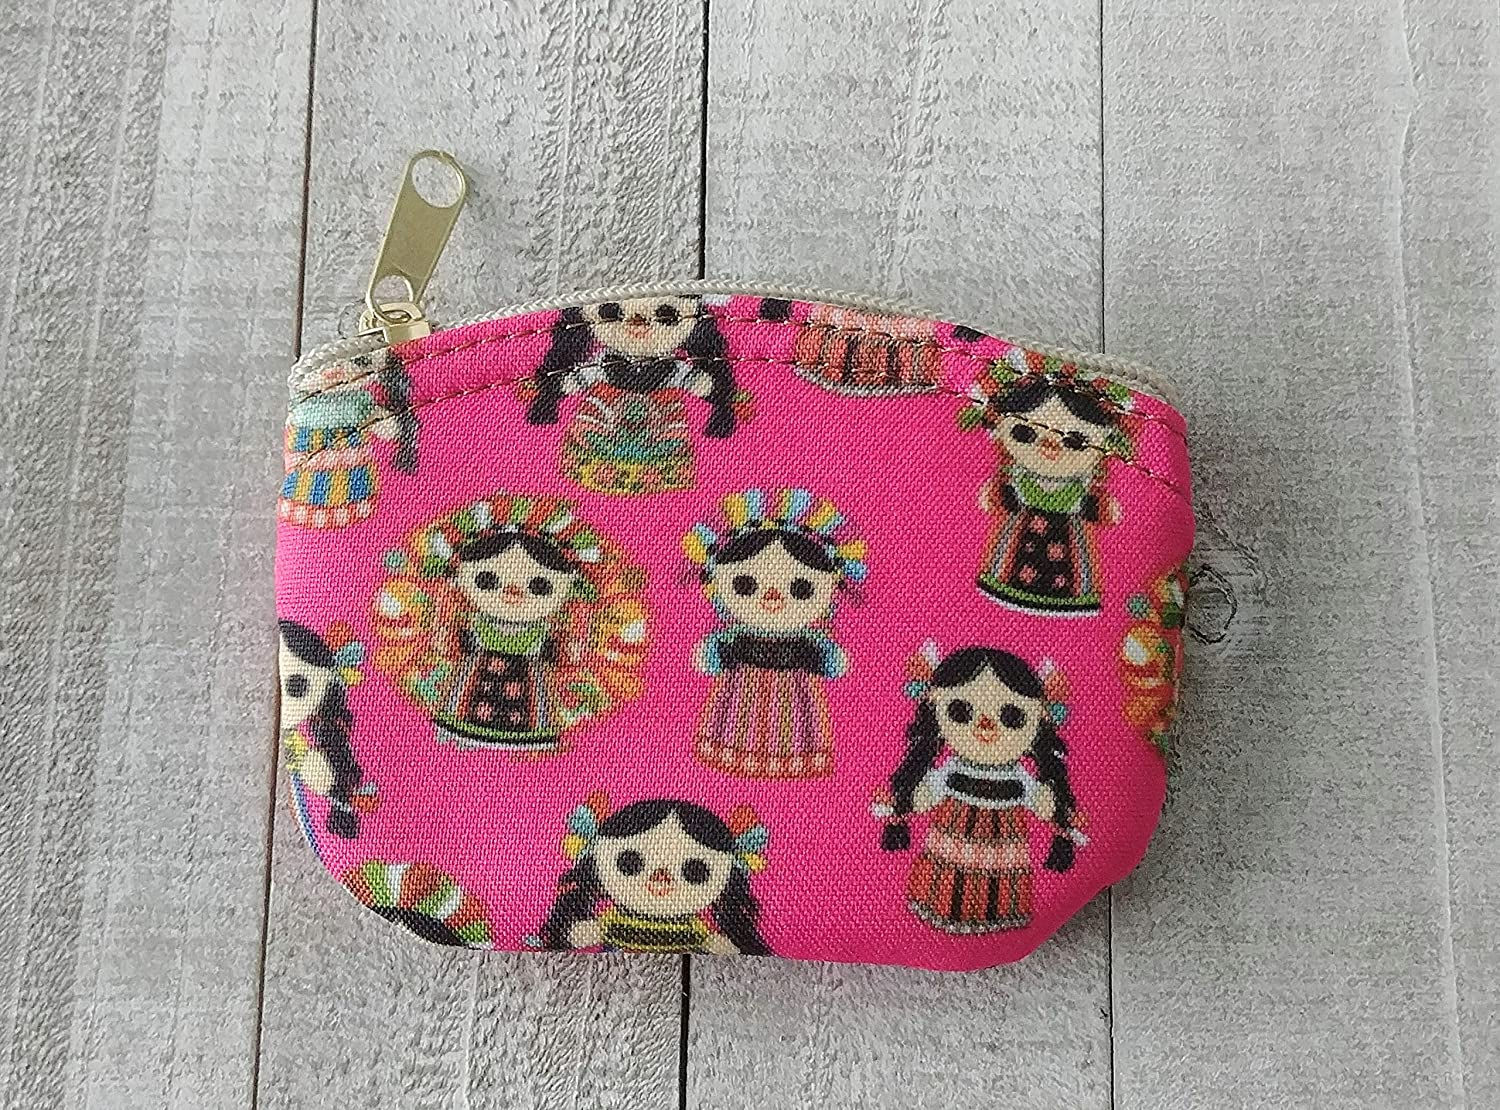 Amazon.com: Mexican Rag Doll Coin Pouch - Hot Pink: Handmade